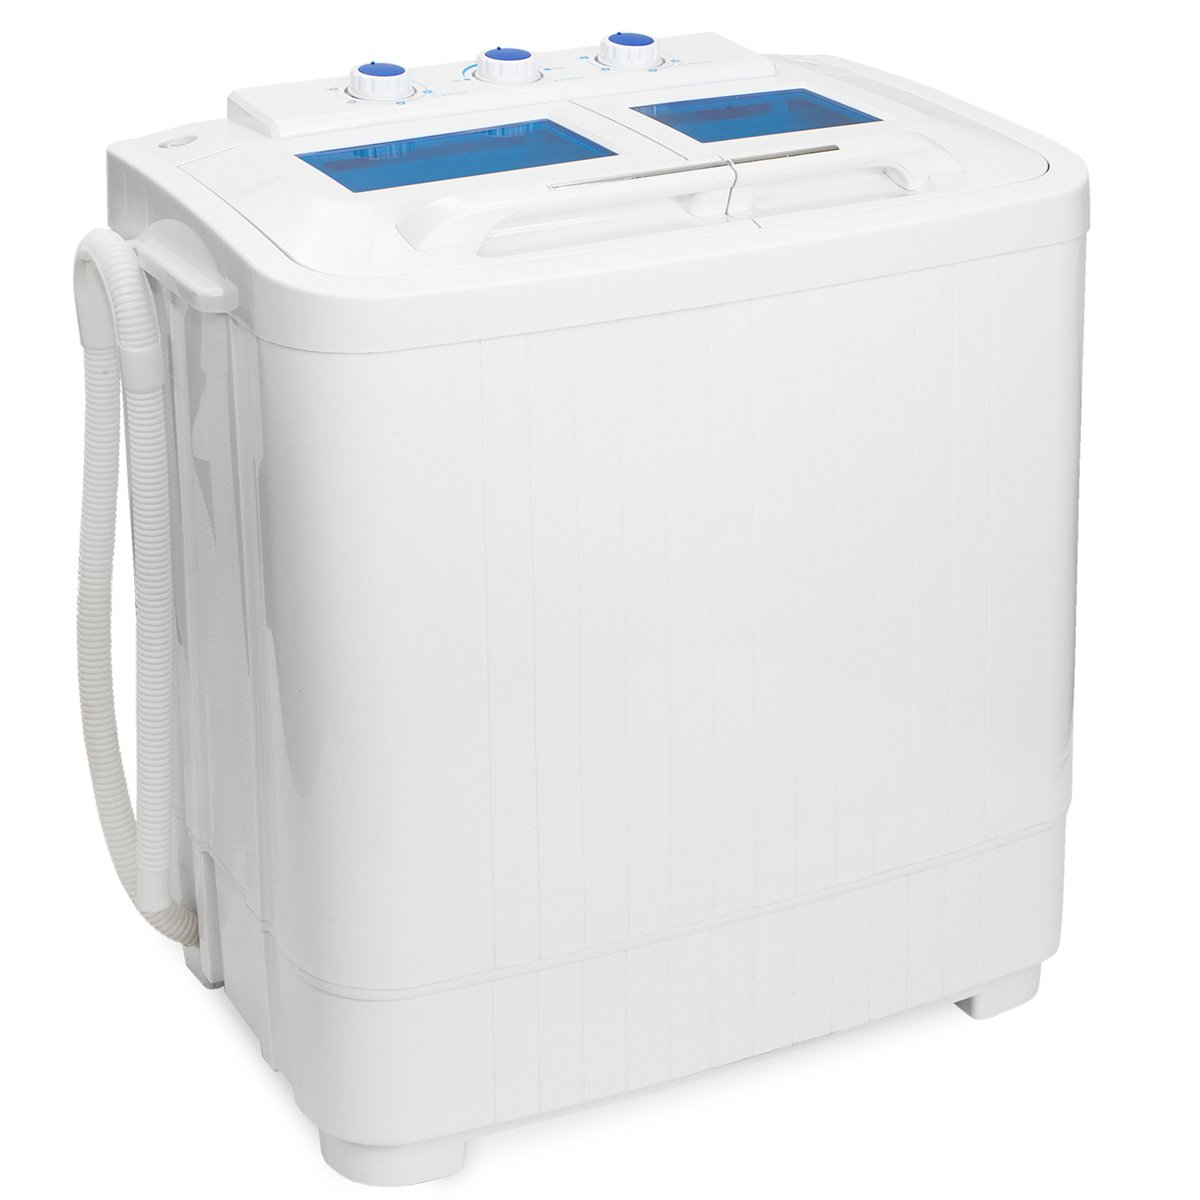 Wonderful Amazon.com: Portable Compact Washer And Spin Dry Cycle With Built In Pump  (33L Washer U0026 16L Spin Dryer): Appliances